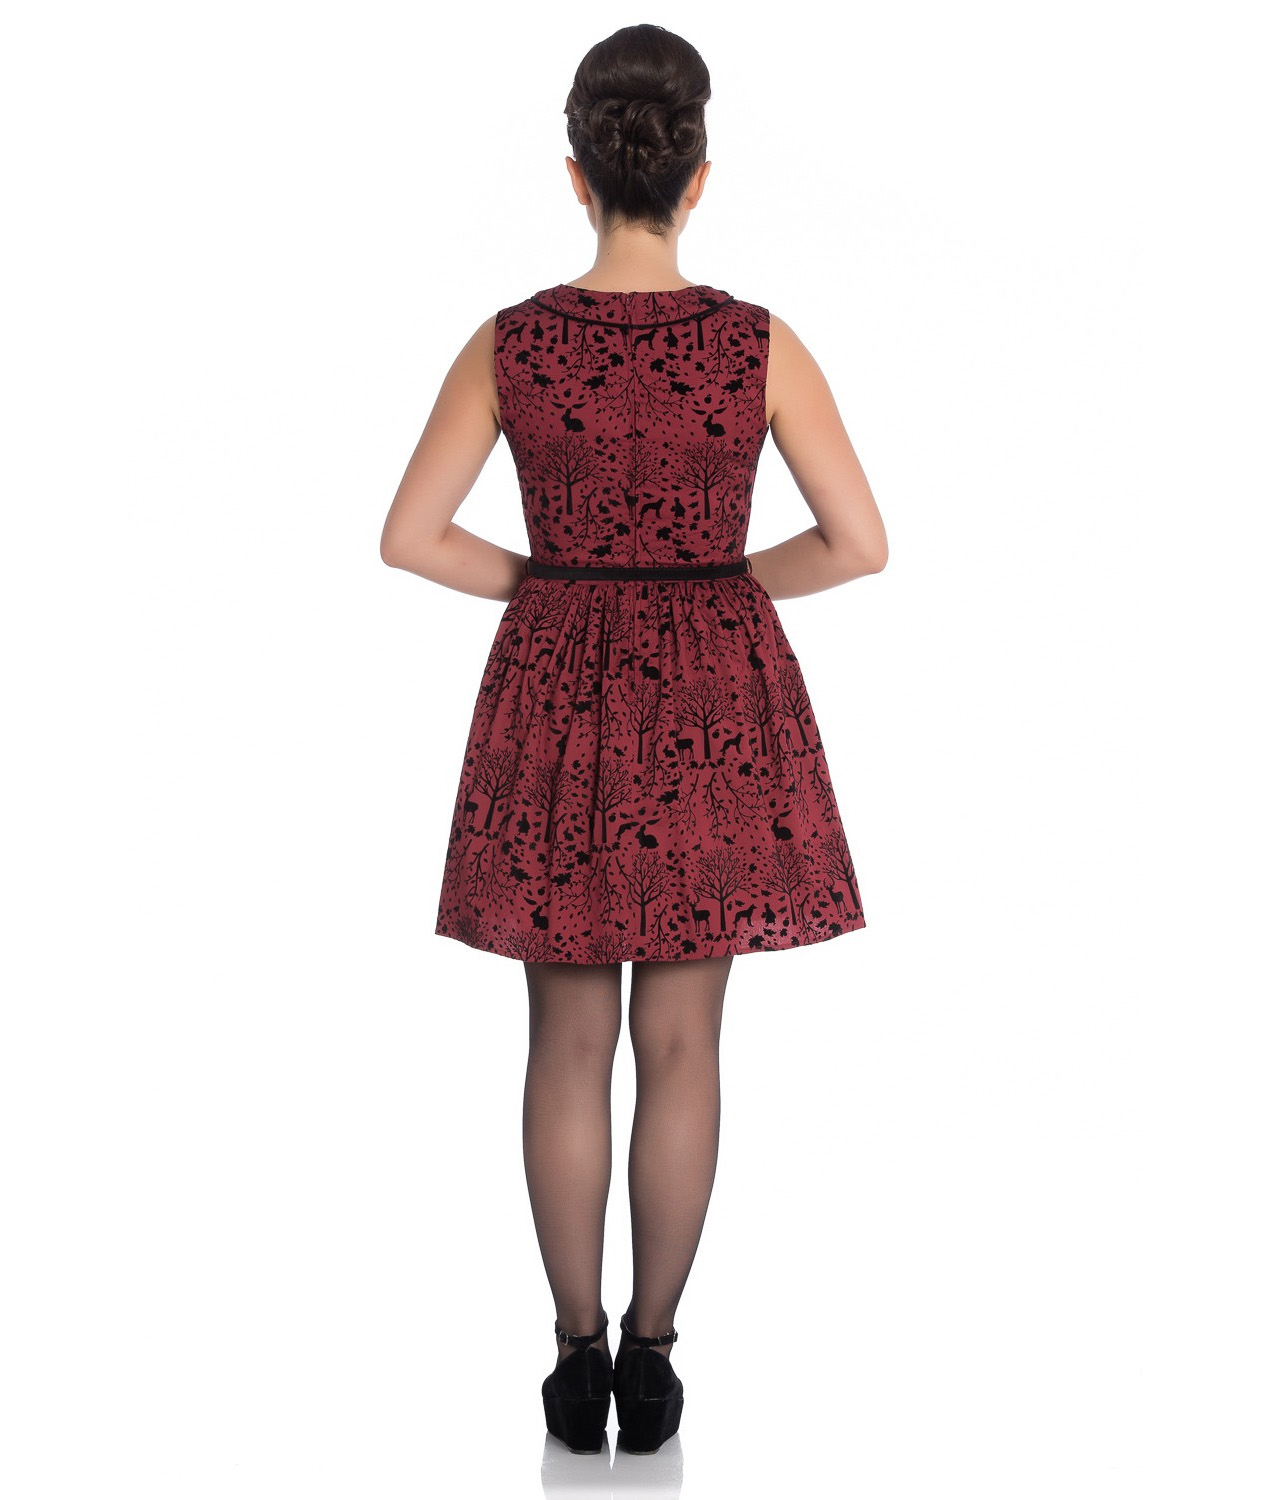 Hell-Bunny-50s-Mini-Skater-Dress-Woodland-Trees-SHERWOOD-Black-Red-All-Sizes thumbnail 17